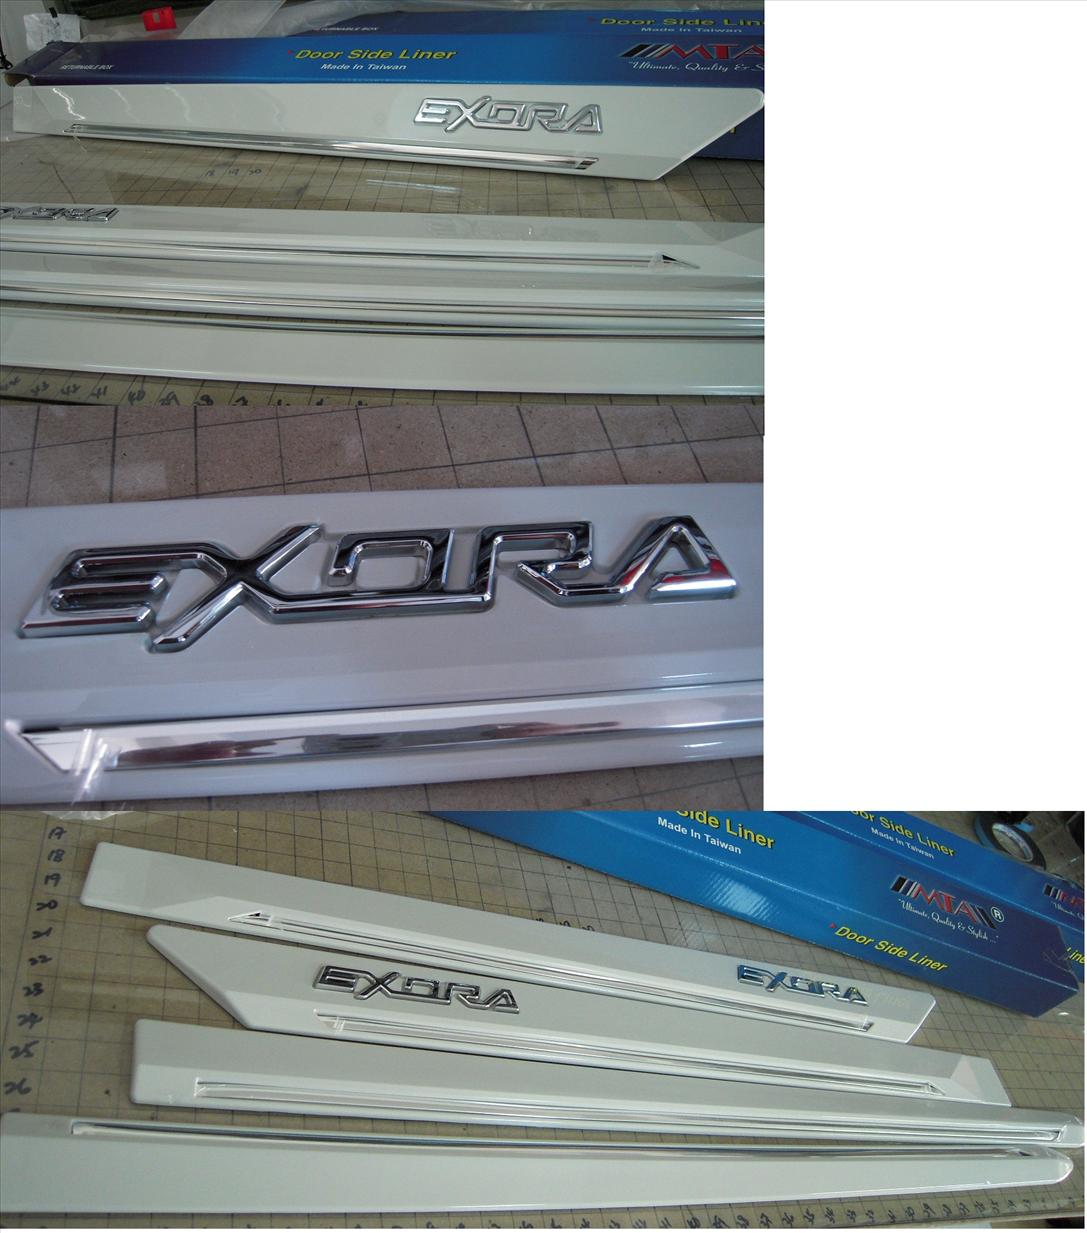 EXORA DOOR LINING WITH PAINT